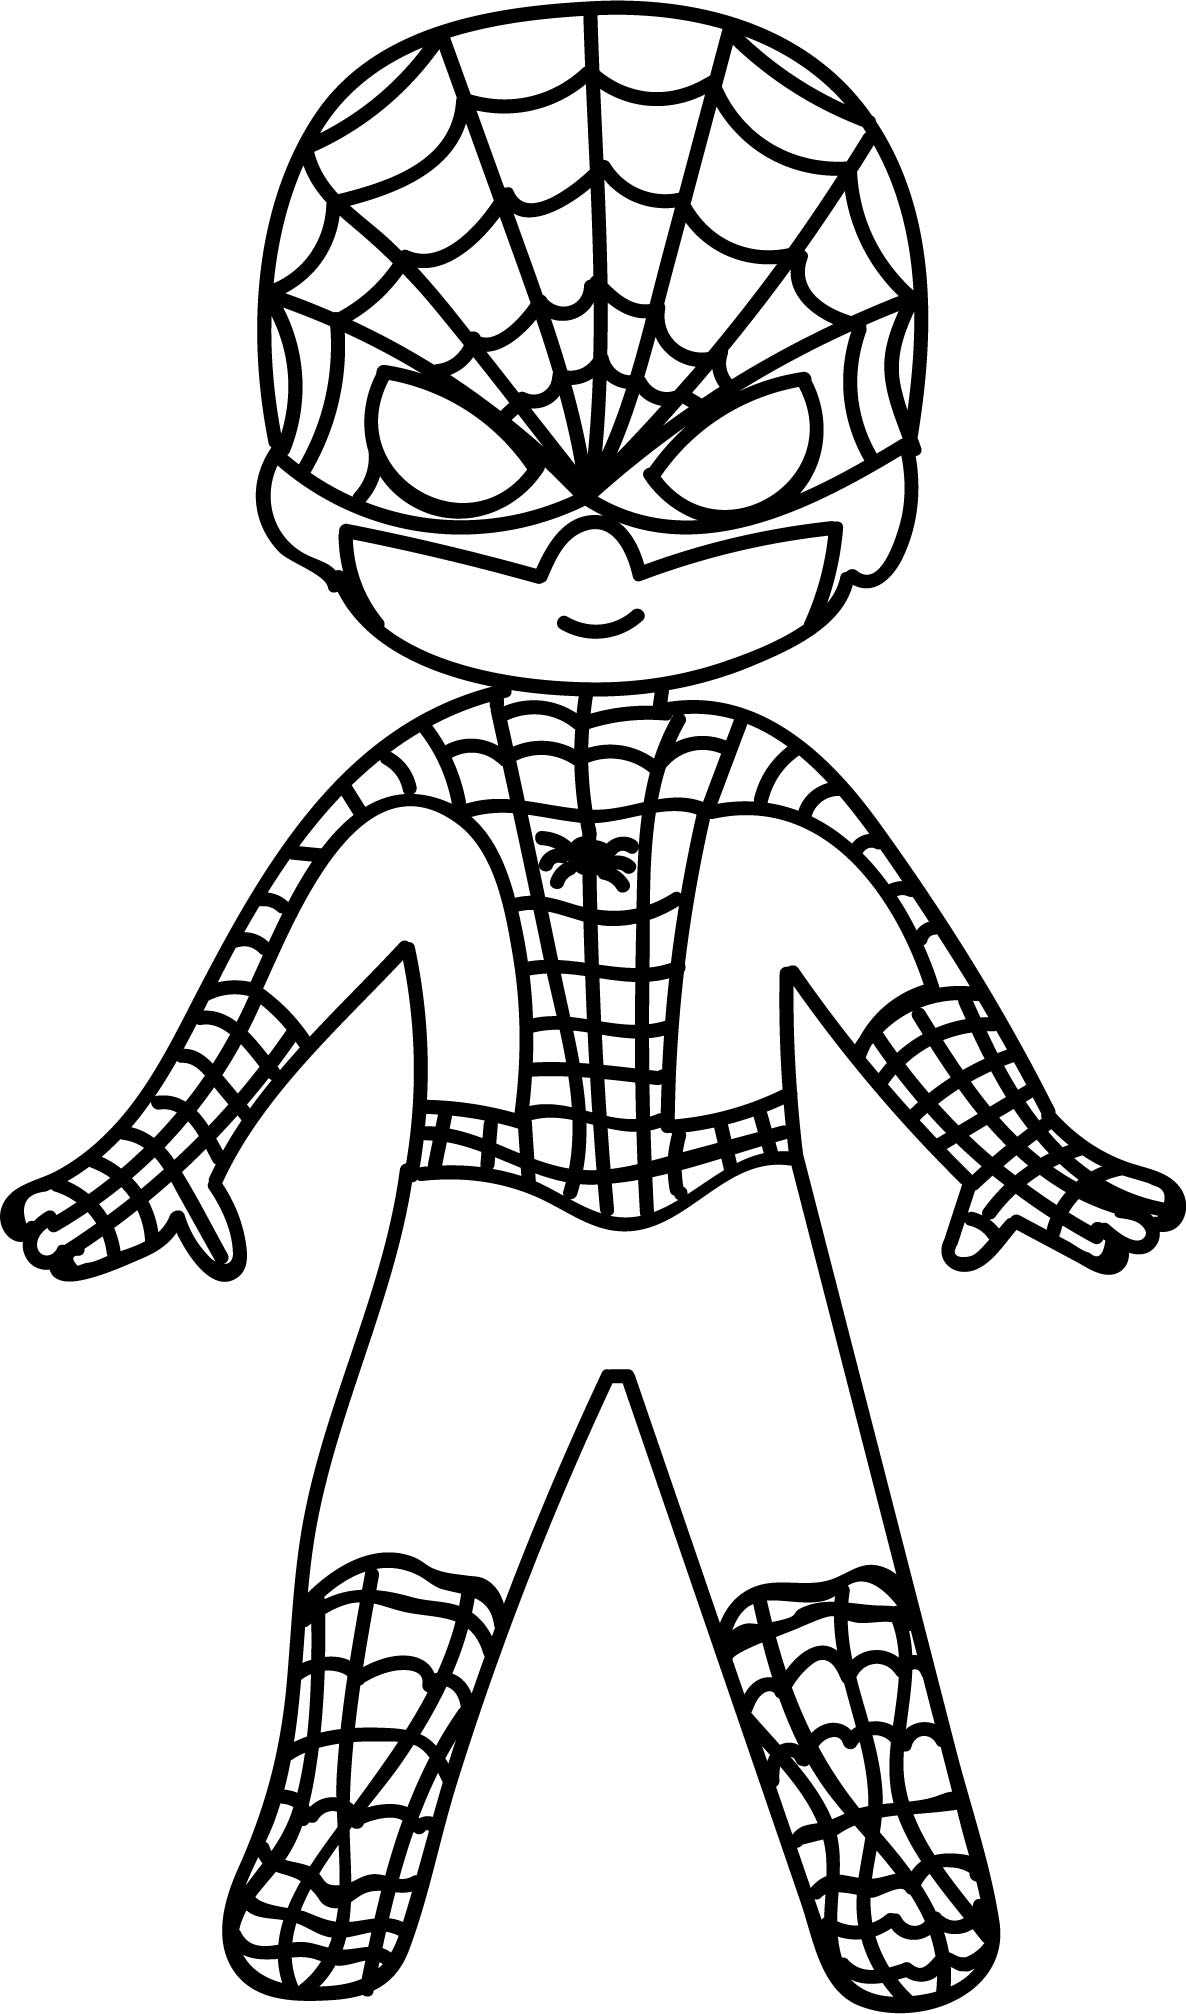 kids coloring pages spiderman | Spiderman Head Drawing at GetDrawings.com | Free for ...